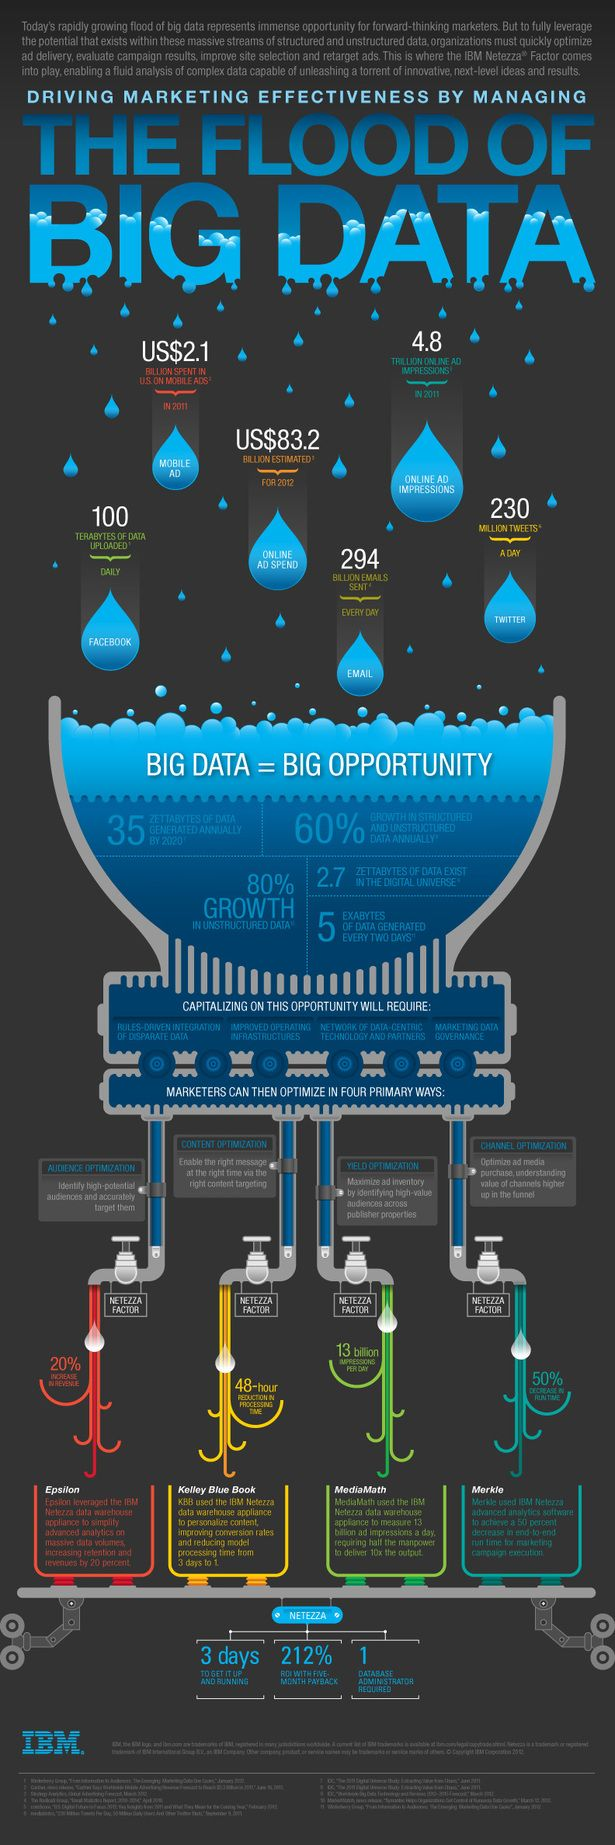 Driving #marketing Effectiveness by Managing. #bigdata #infographic